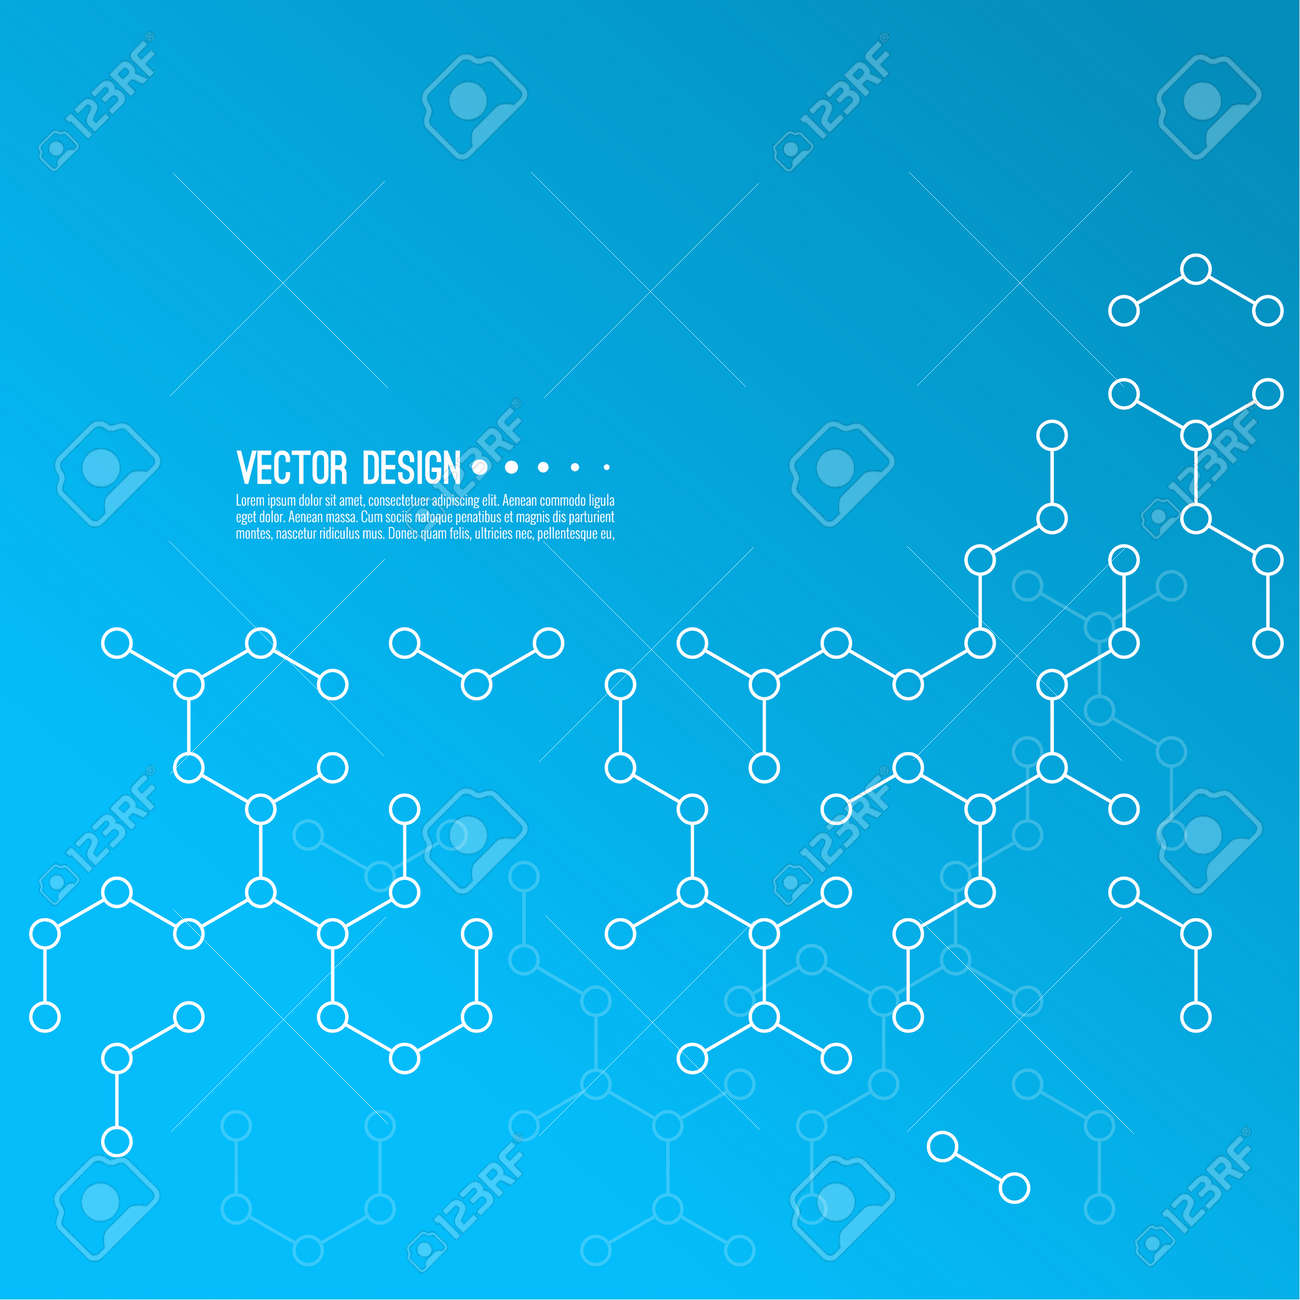 Abstract background of molecular structure. - 173122512